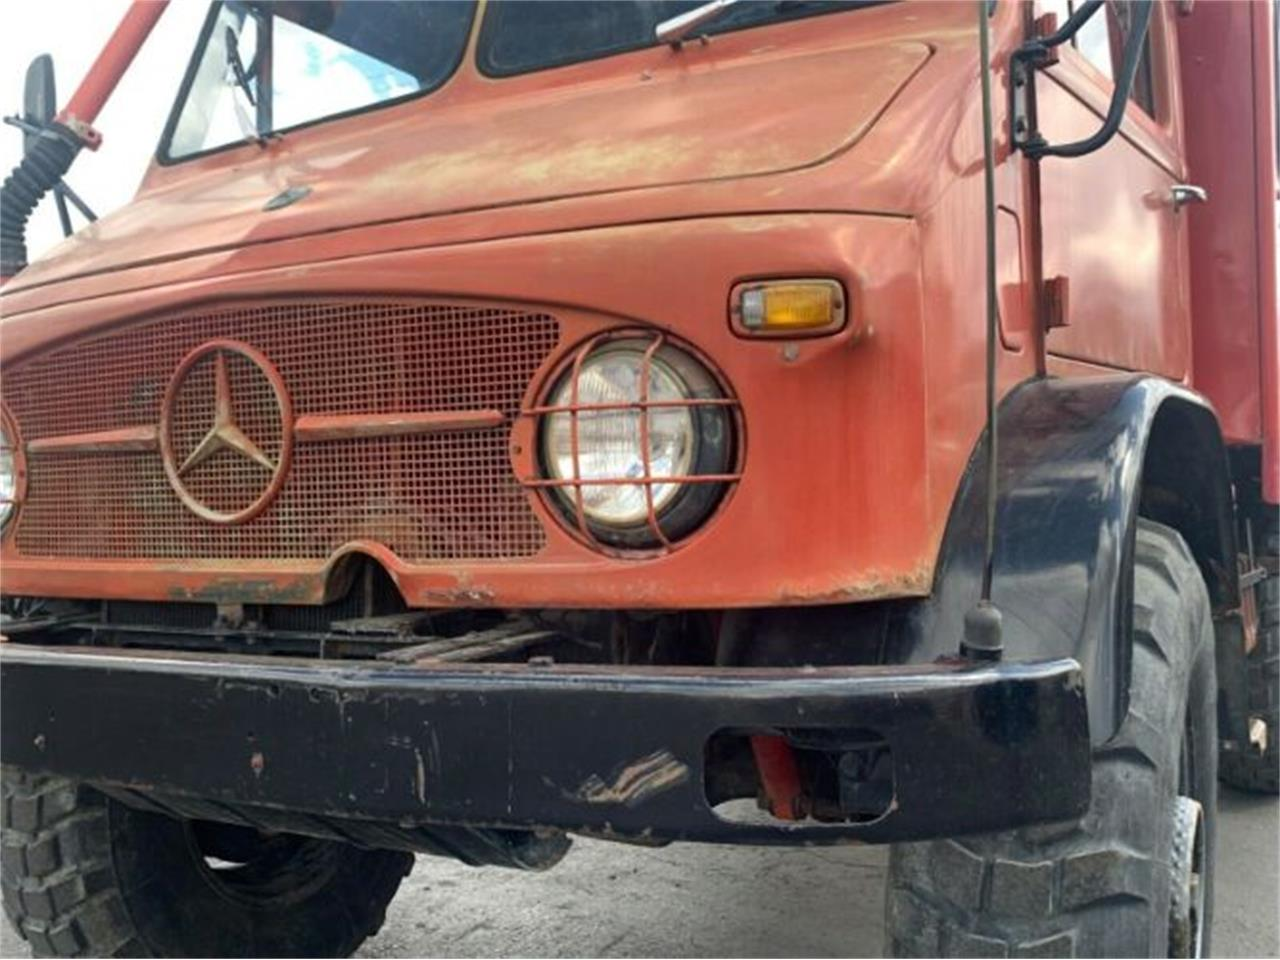 1965 Mercedes-Benz Unimog for sale in Cadillac, MI – photo 5